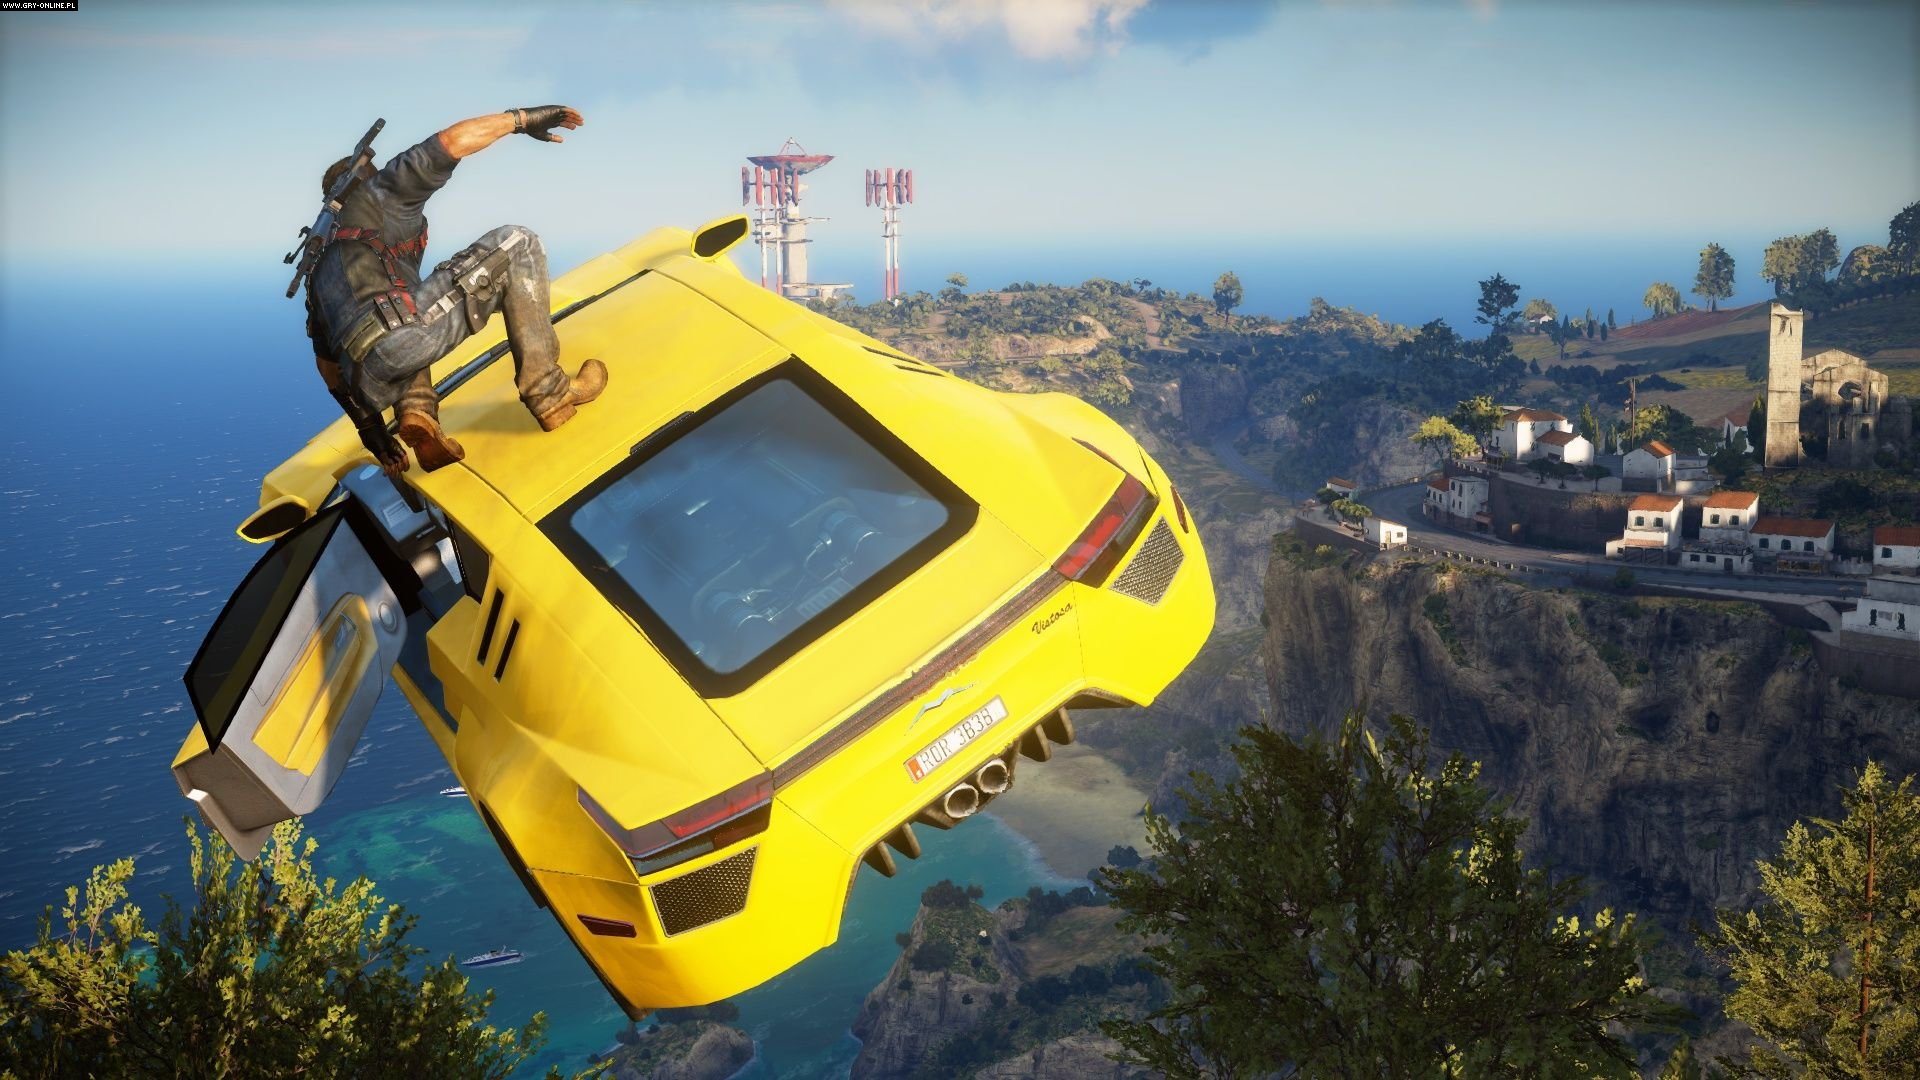 Just Cause 3 PC, XONE, PS4 Games Image 45/90, Avalanche Studios, Square-Enix / Eidos